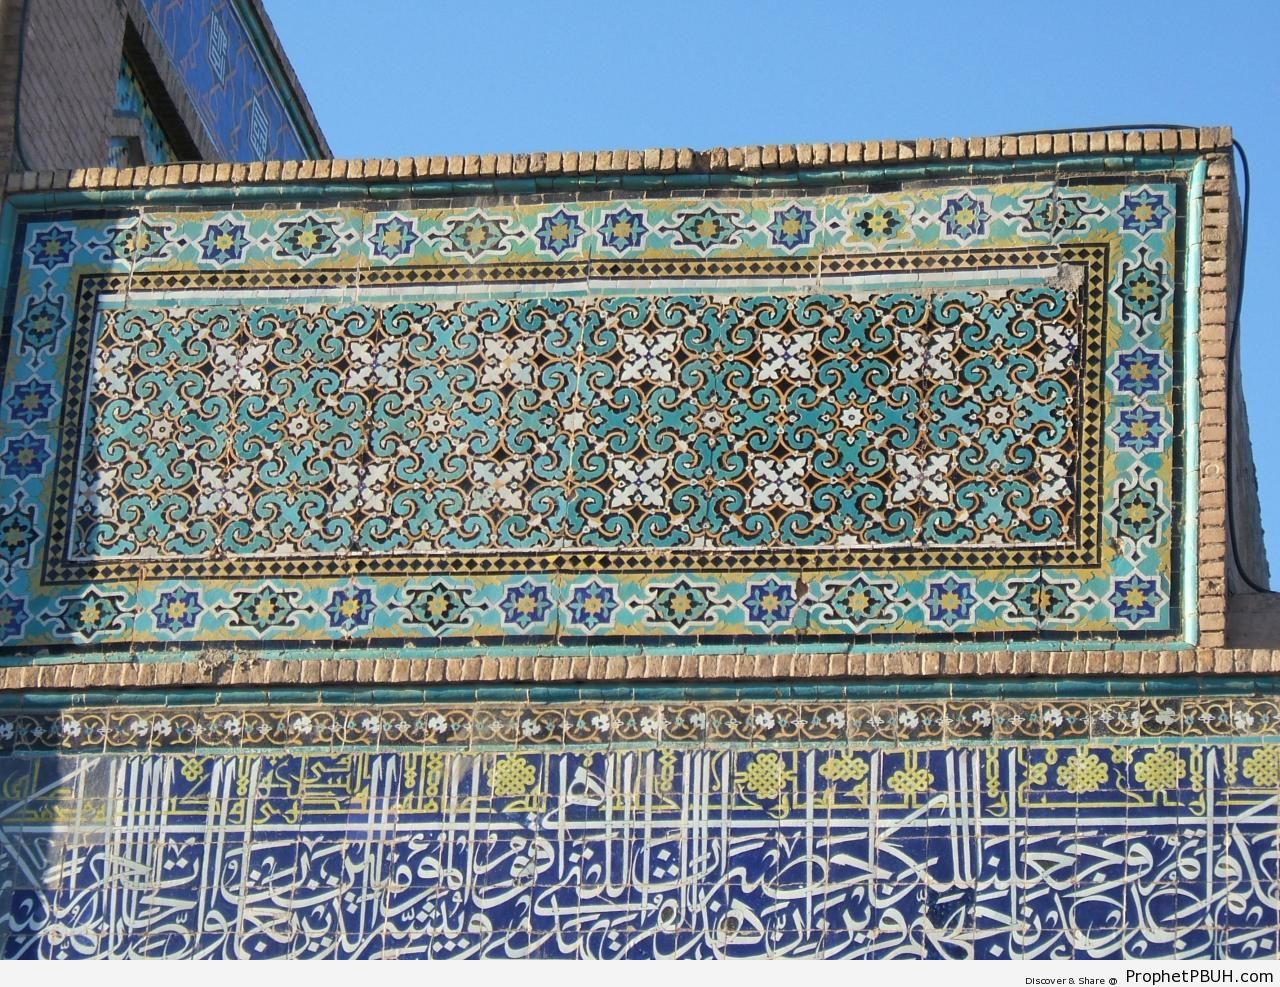 Tilework and Calligraphy at the Herat Friday Mosque in Afghanistan - Afghanistan Islamic Architecture